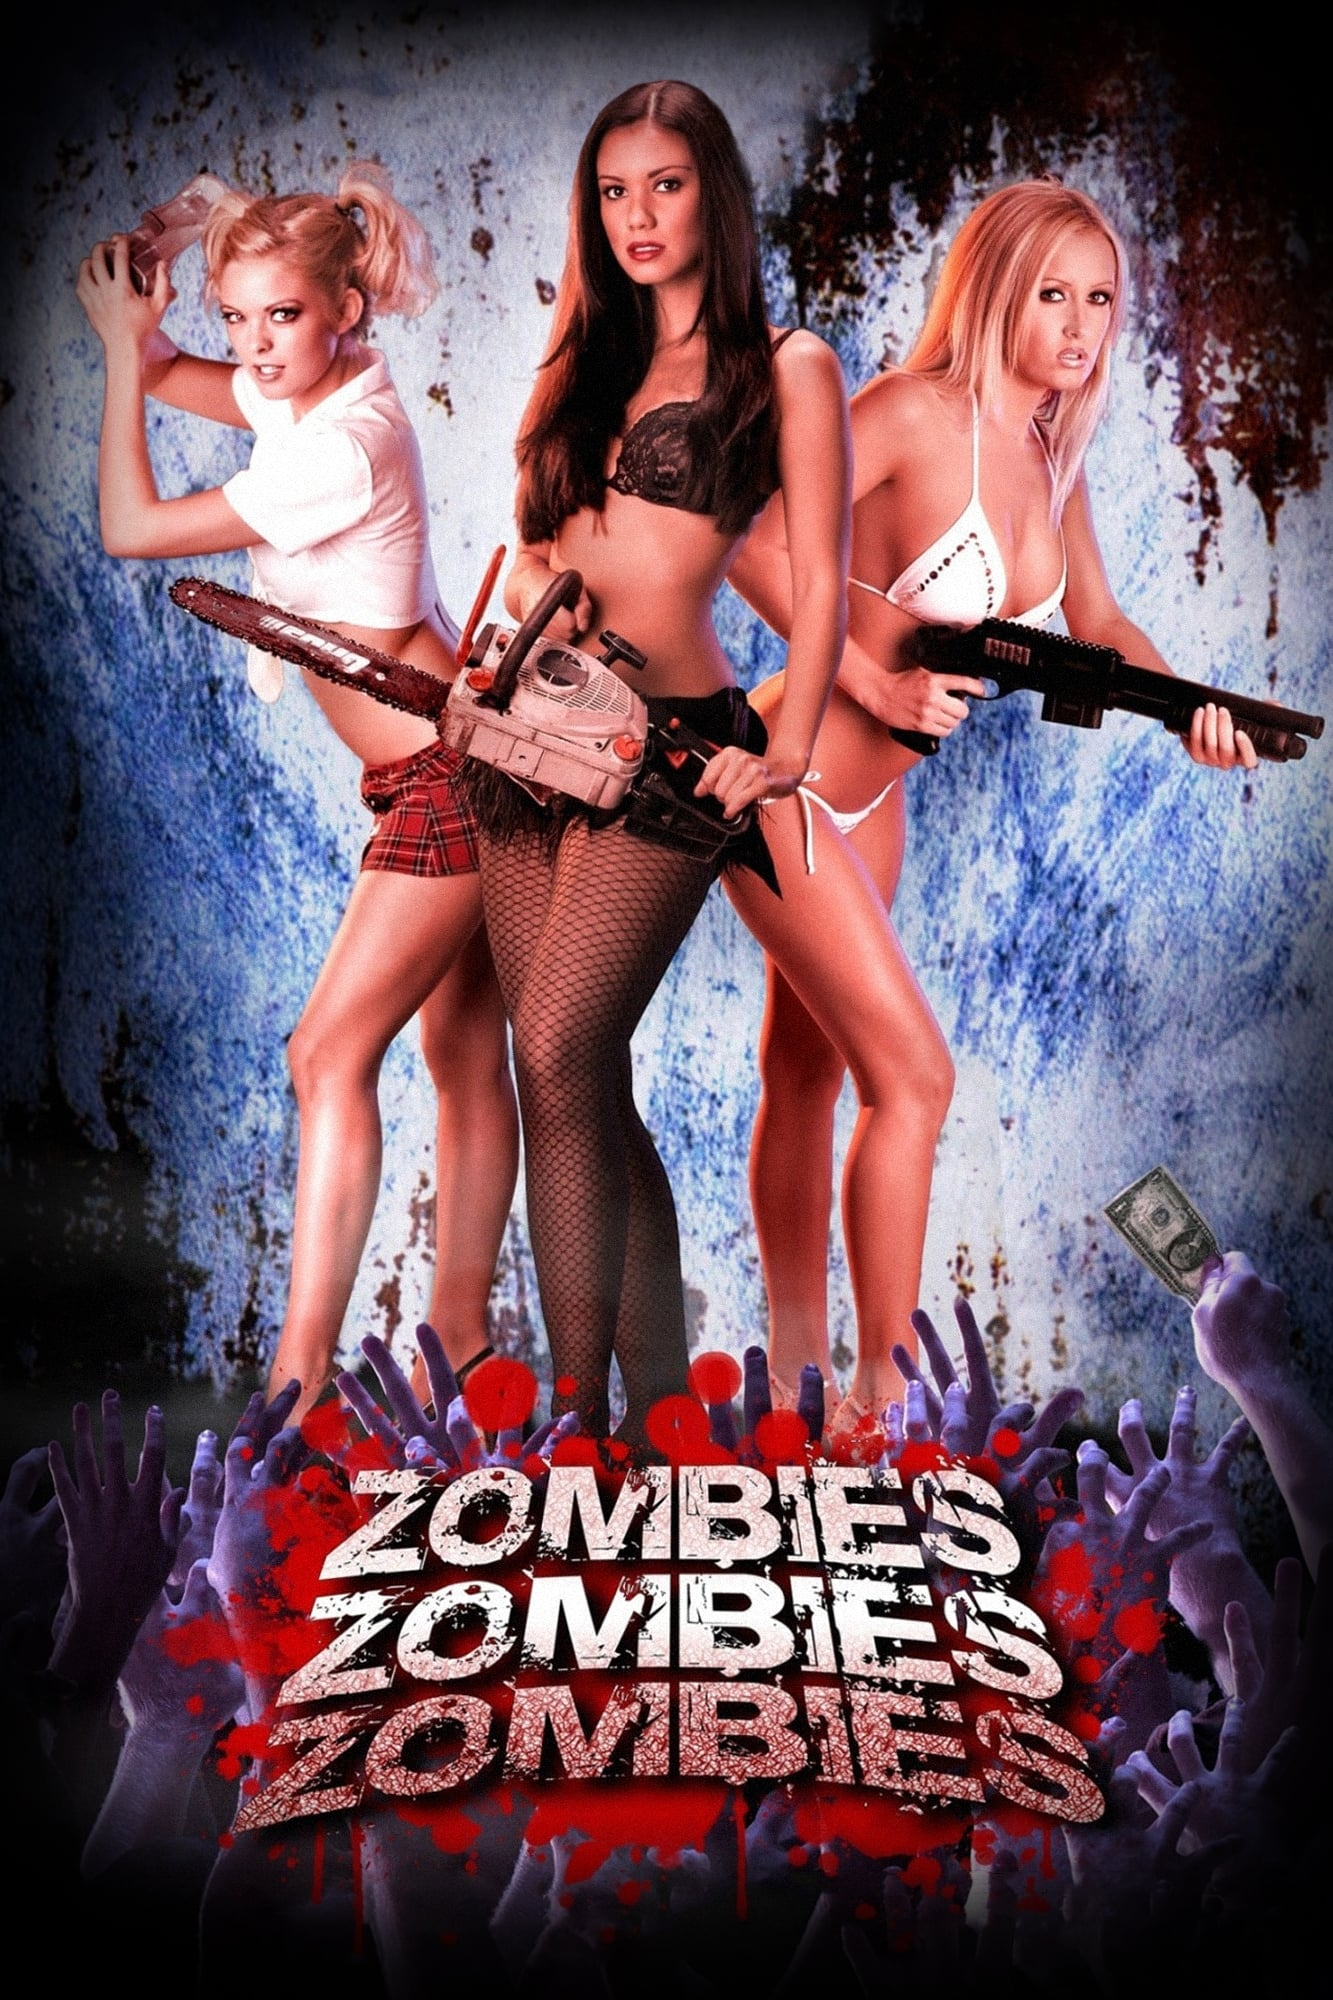 Zombies! Zombies! Zombies! (2008)